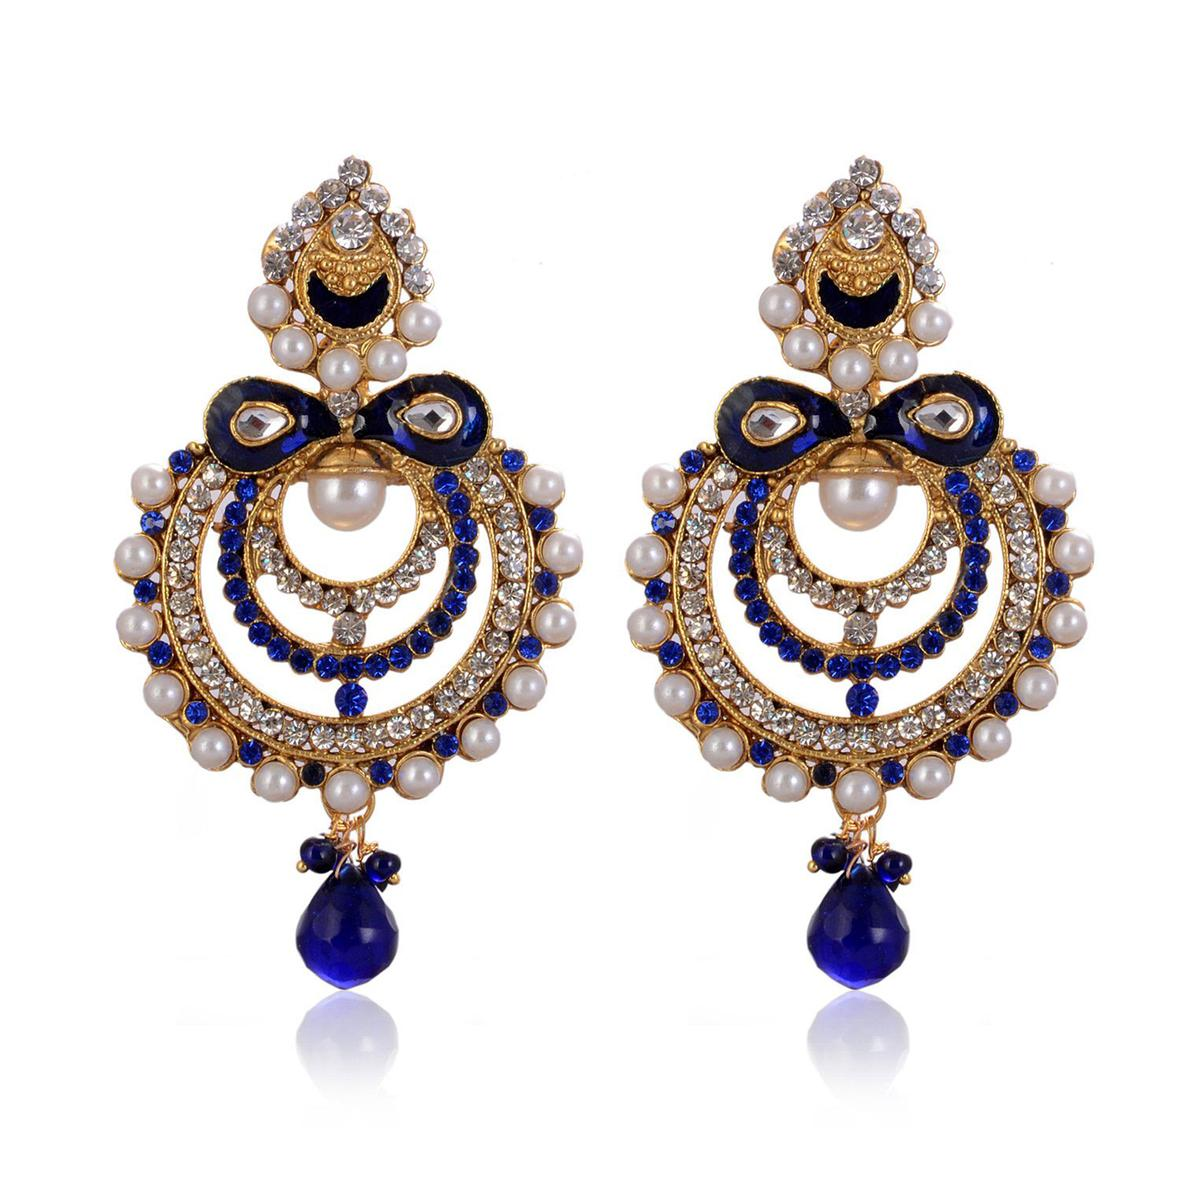 Innovative Blue Colored Mix Metal Stone Work Earrings